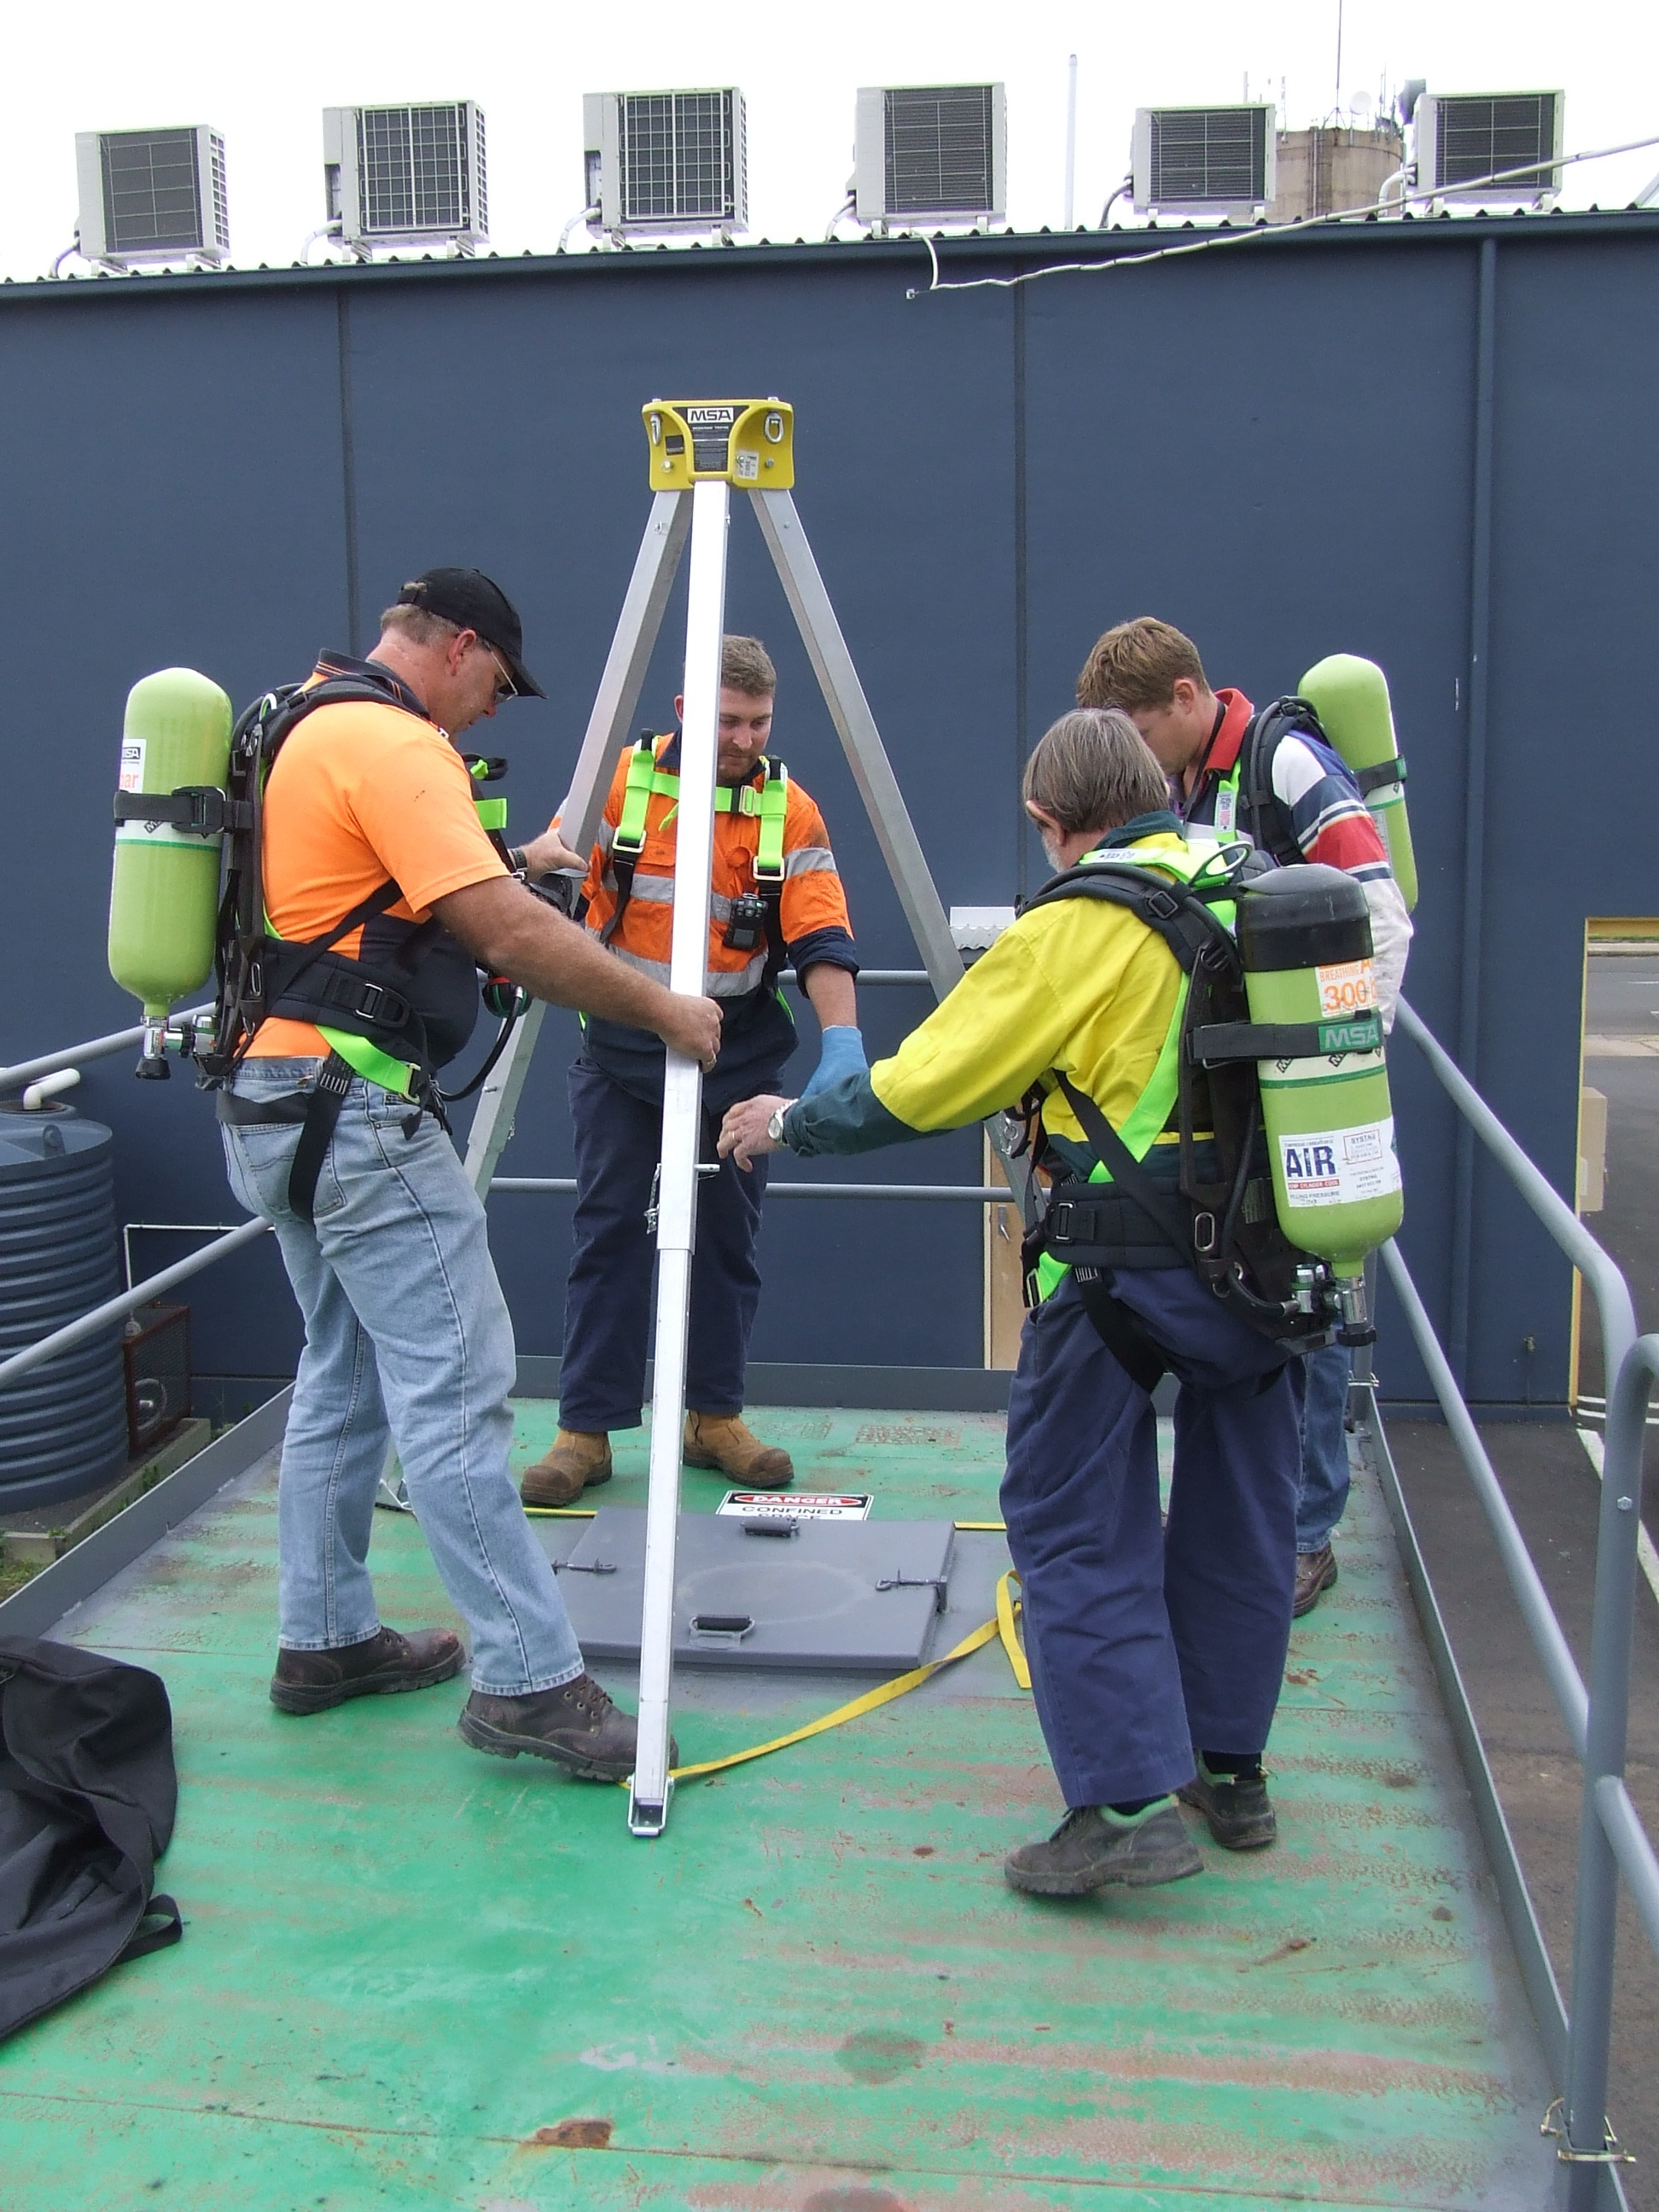 confined spaces 7-7-10 007